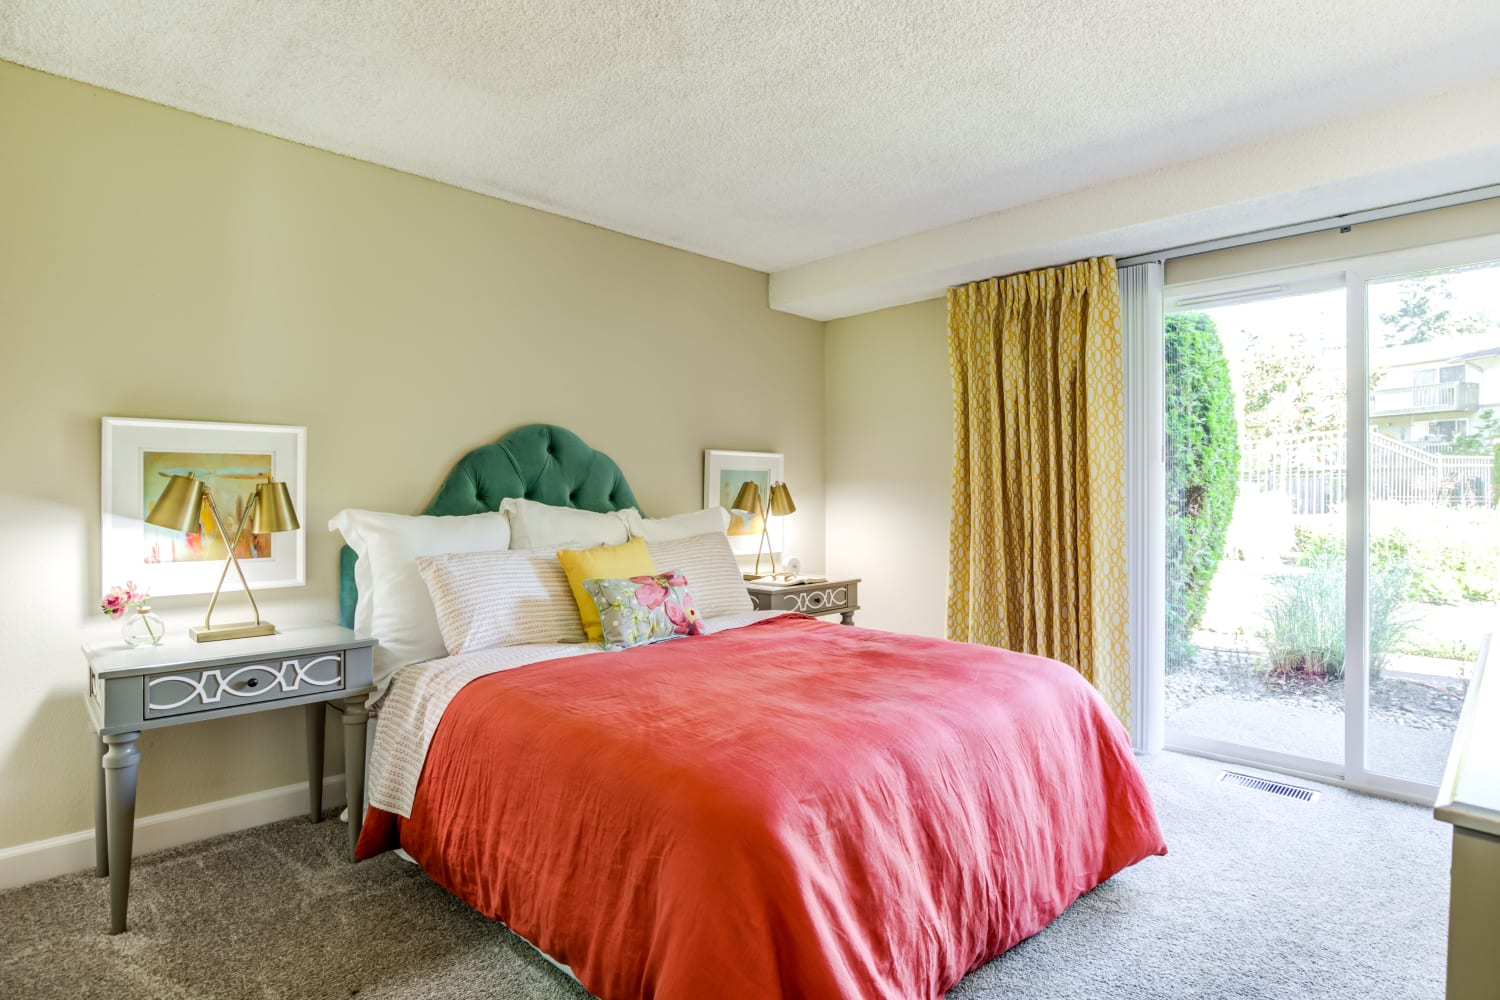 Well lit and spacious bedroom at Edgewood Park Apartments in Bellevue, Washington